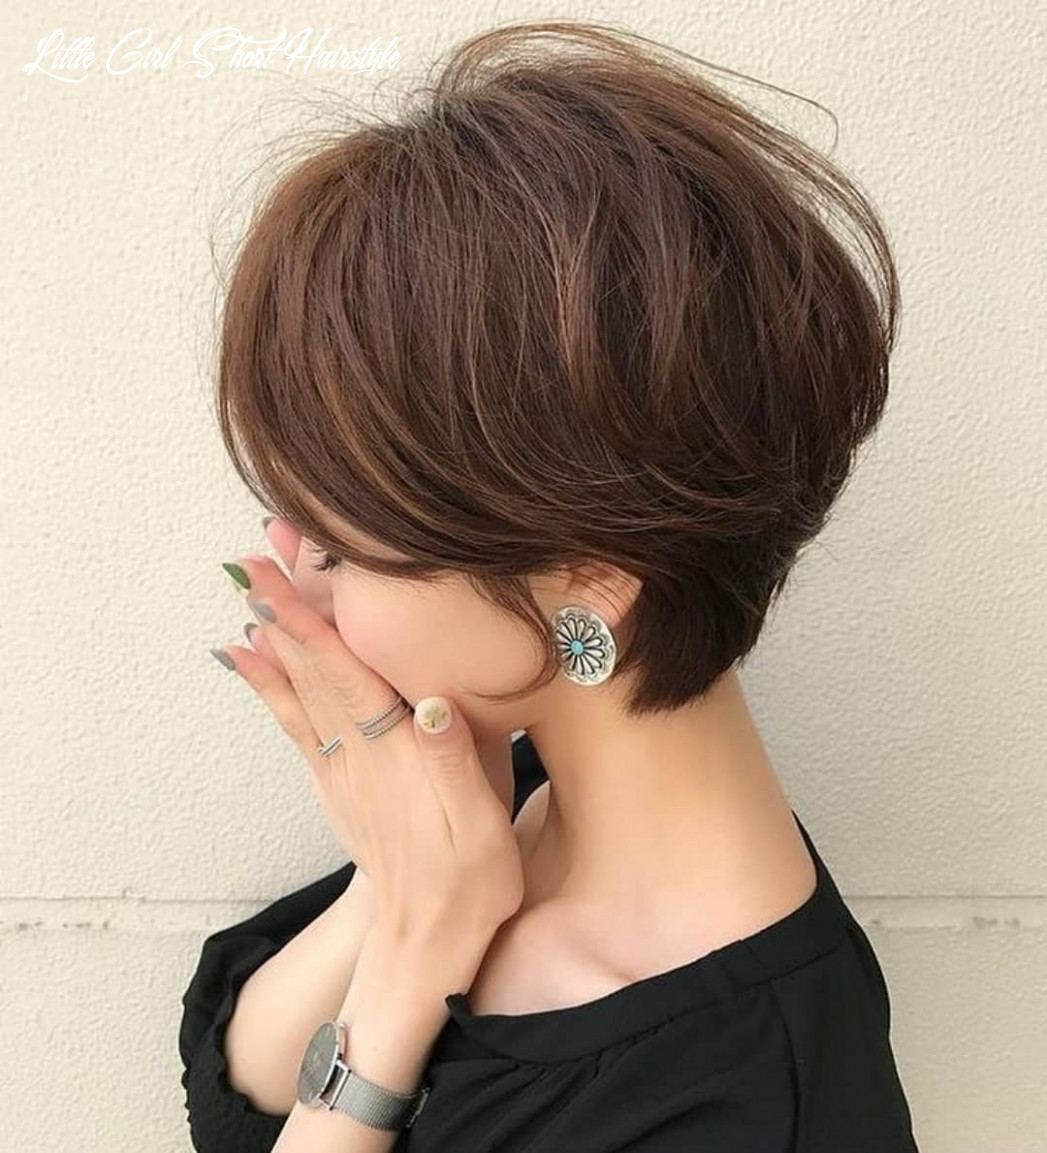 Cute Short Hairstyles and Haircuts for Young Girl - PoPular Haircuts